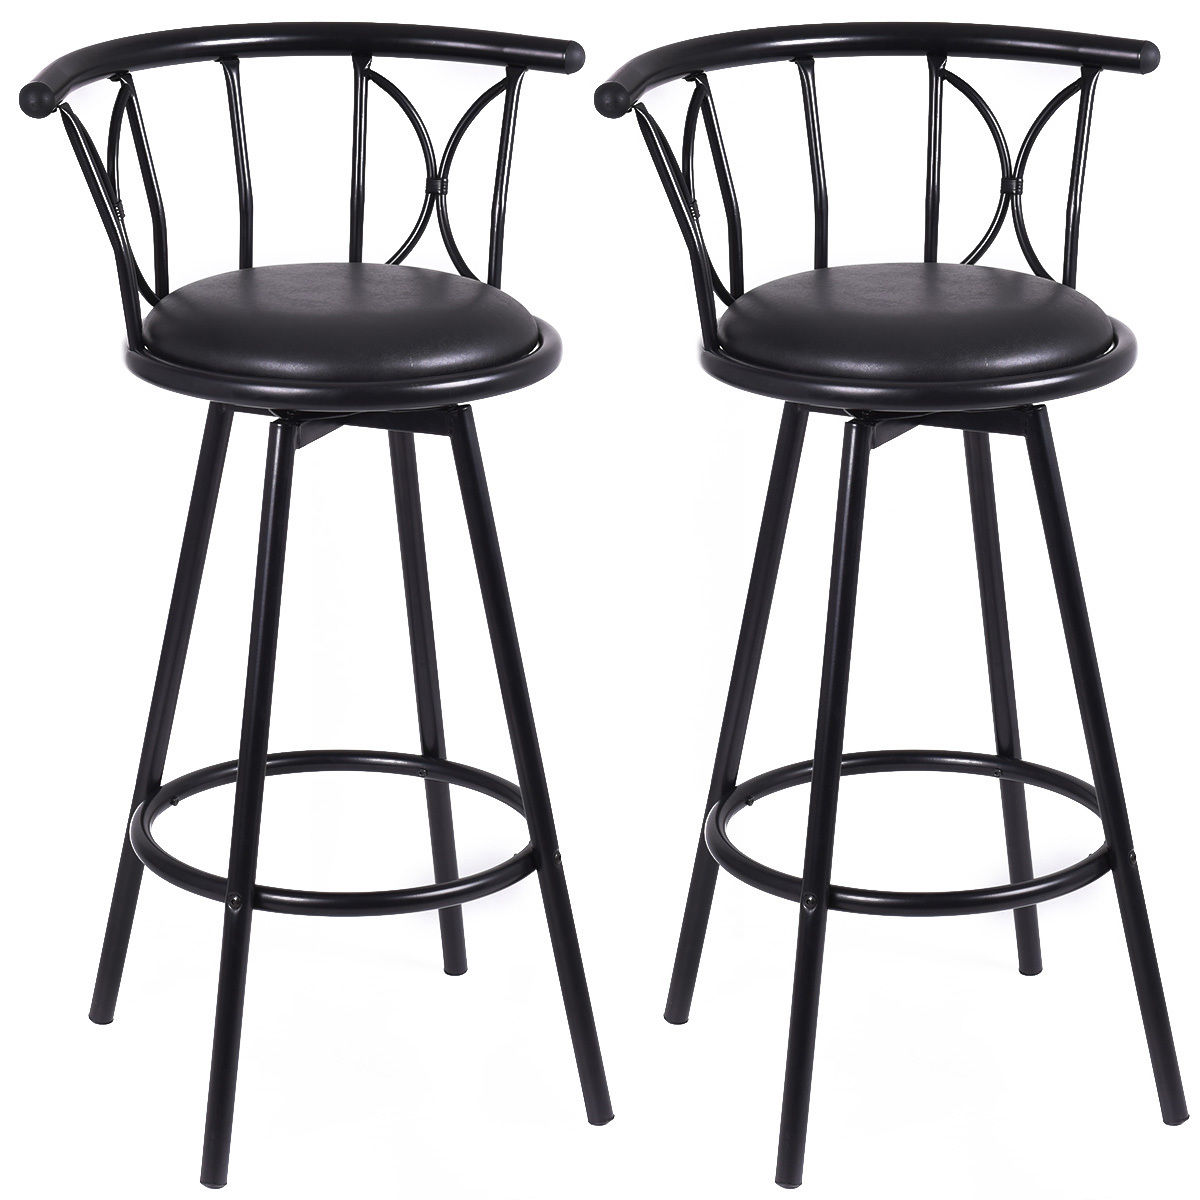 Phenomenal 2Pcs Modern Black High Bar Stools Barstools Swivel Rotatable Gmtry Best Dining Table And Chair Ideas Images Gmtryco